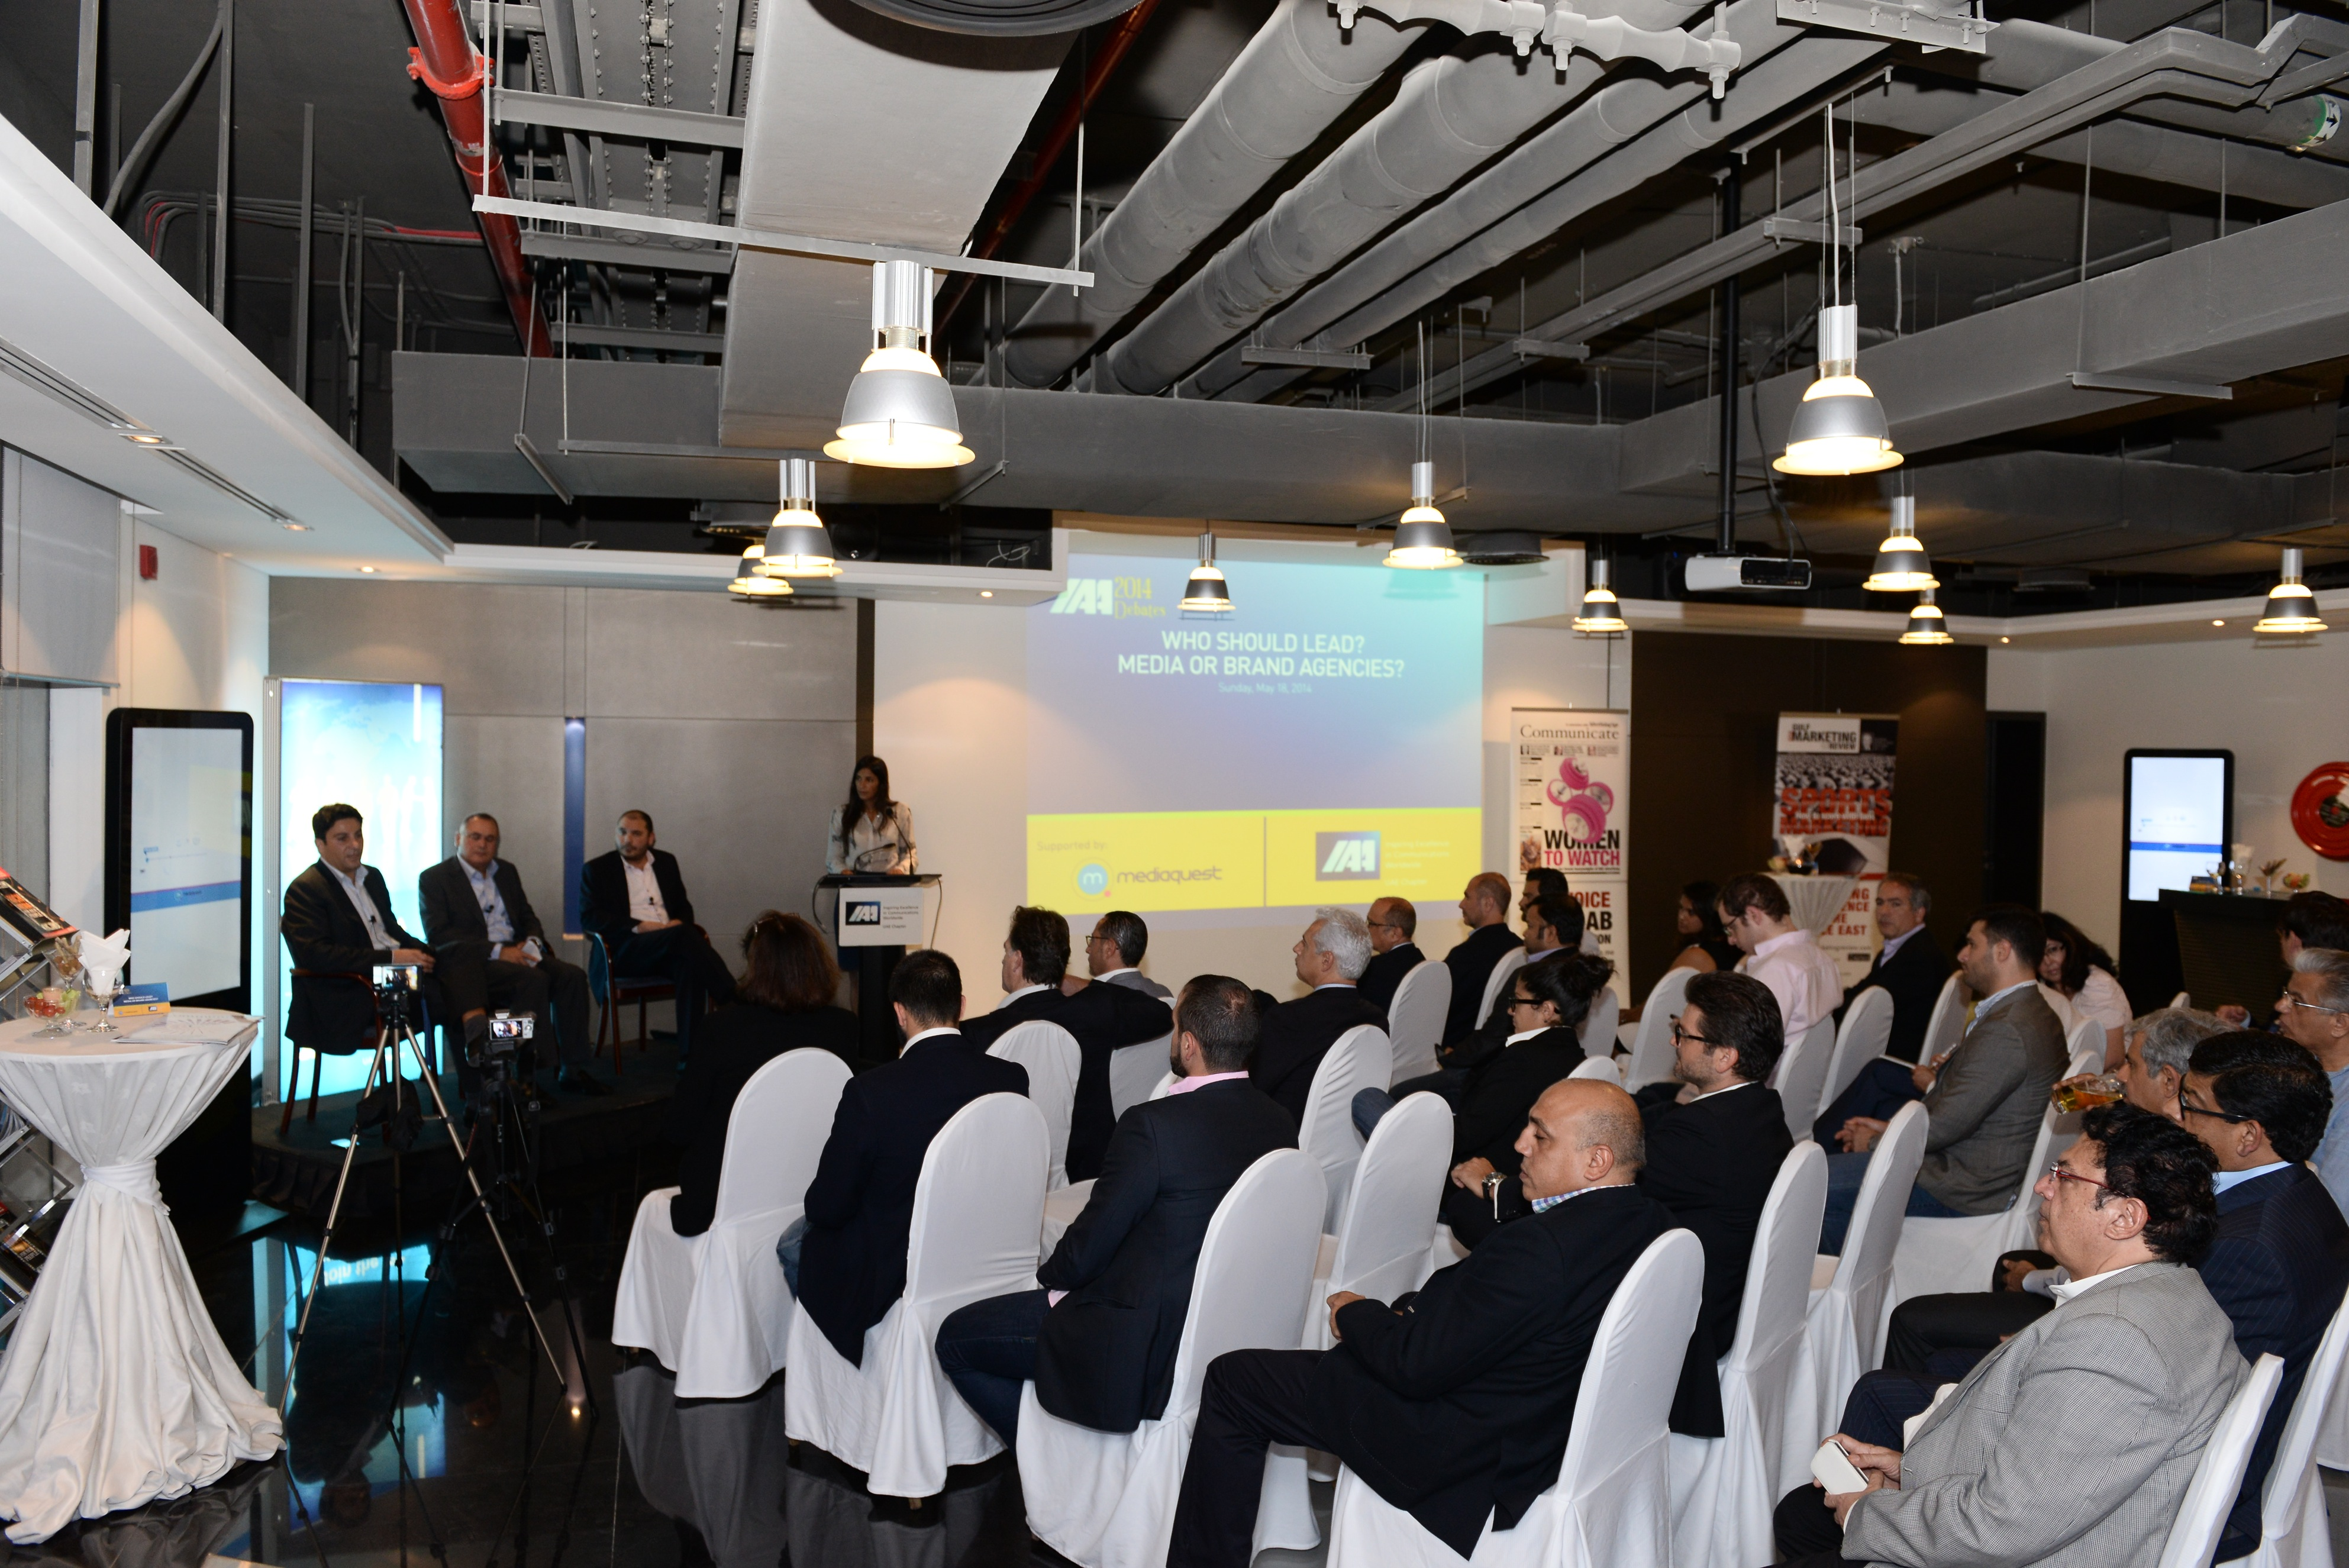 the-iaa-uae-chapter-holds-second-session-of-its-debates-series